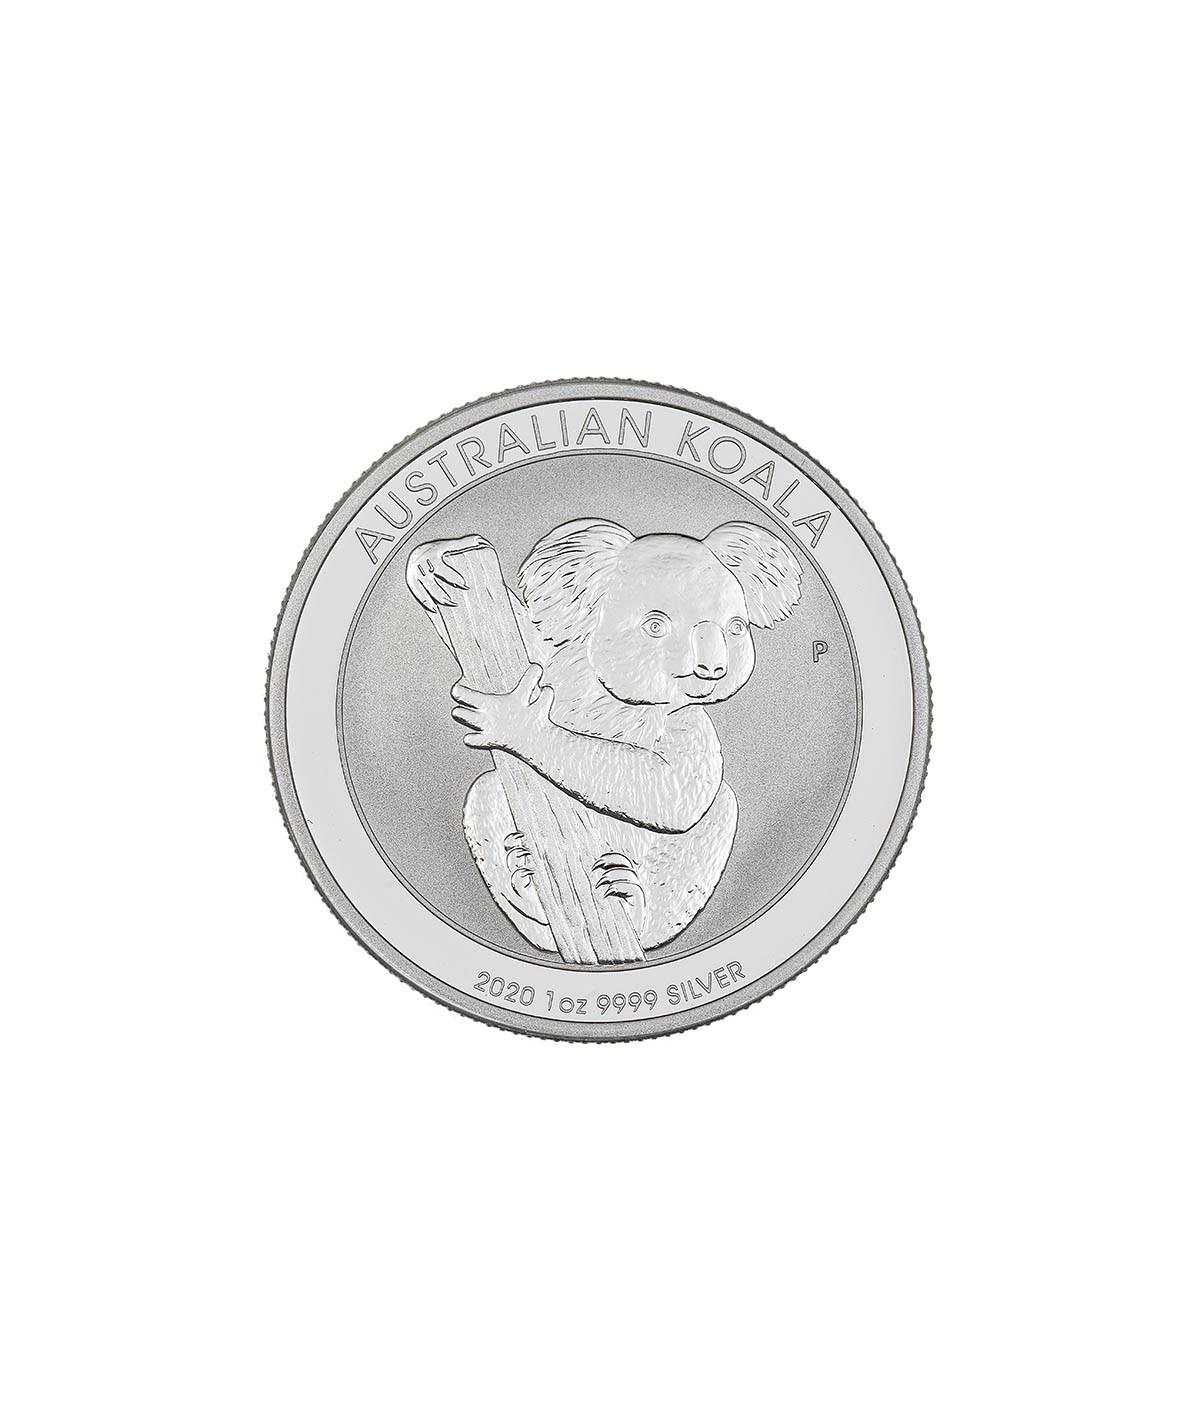 Silver Koala 1 oz coin from 2020